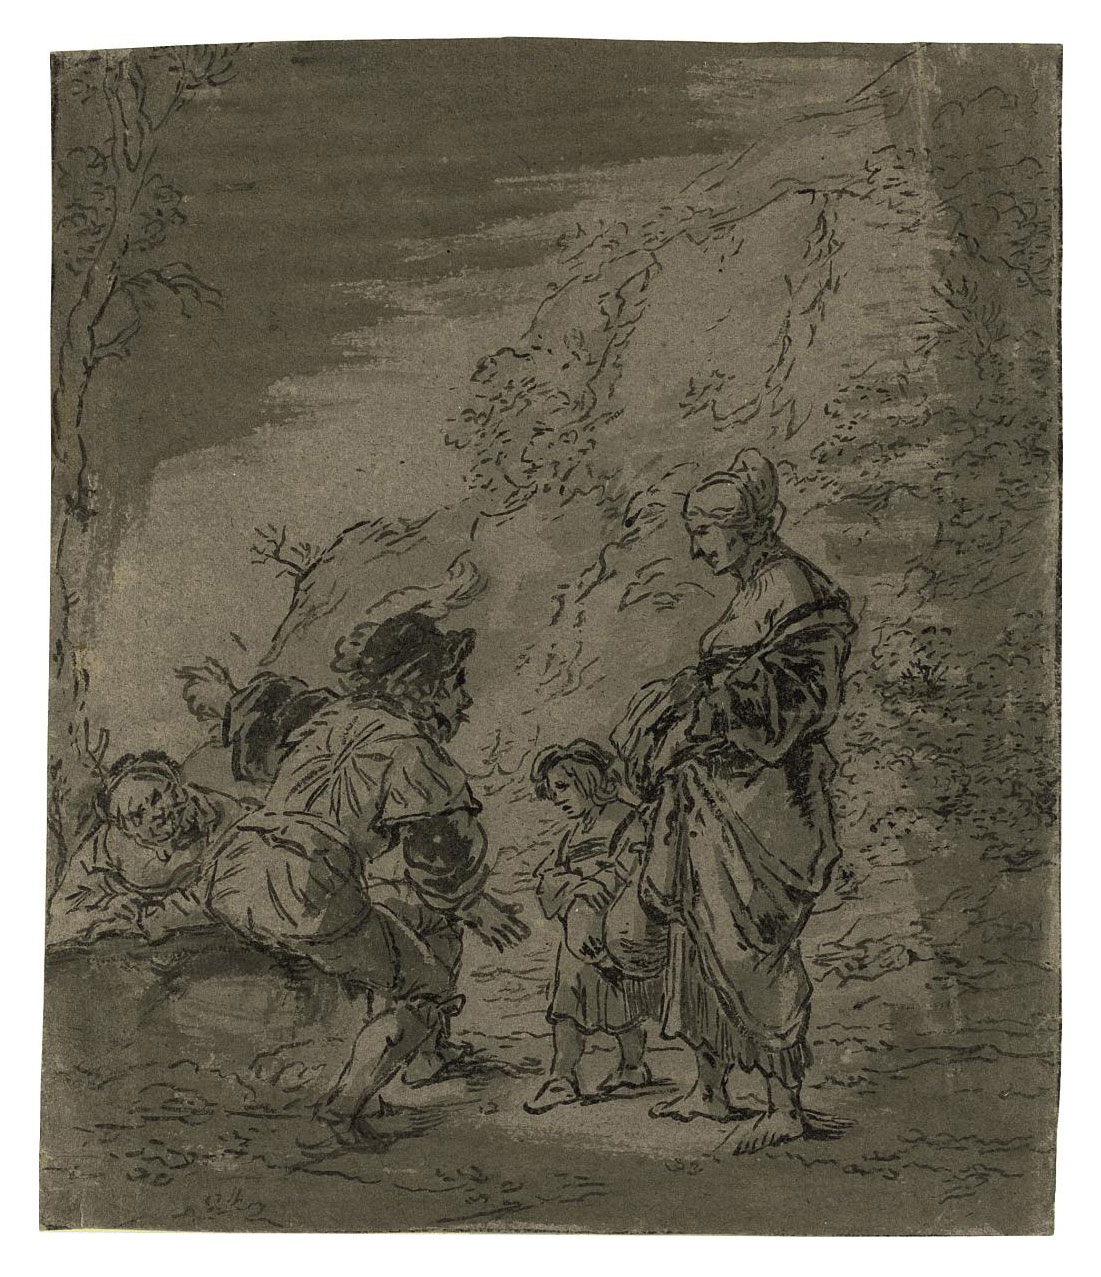 A woman and child asking directions from two men (recto); A man and woman conversing near a village (verso)